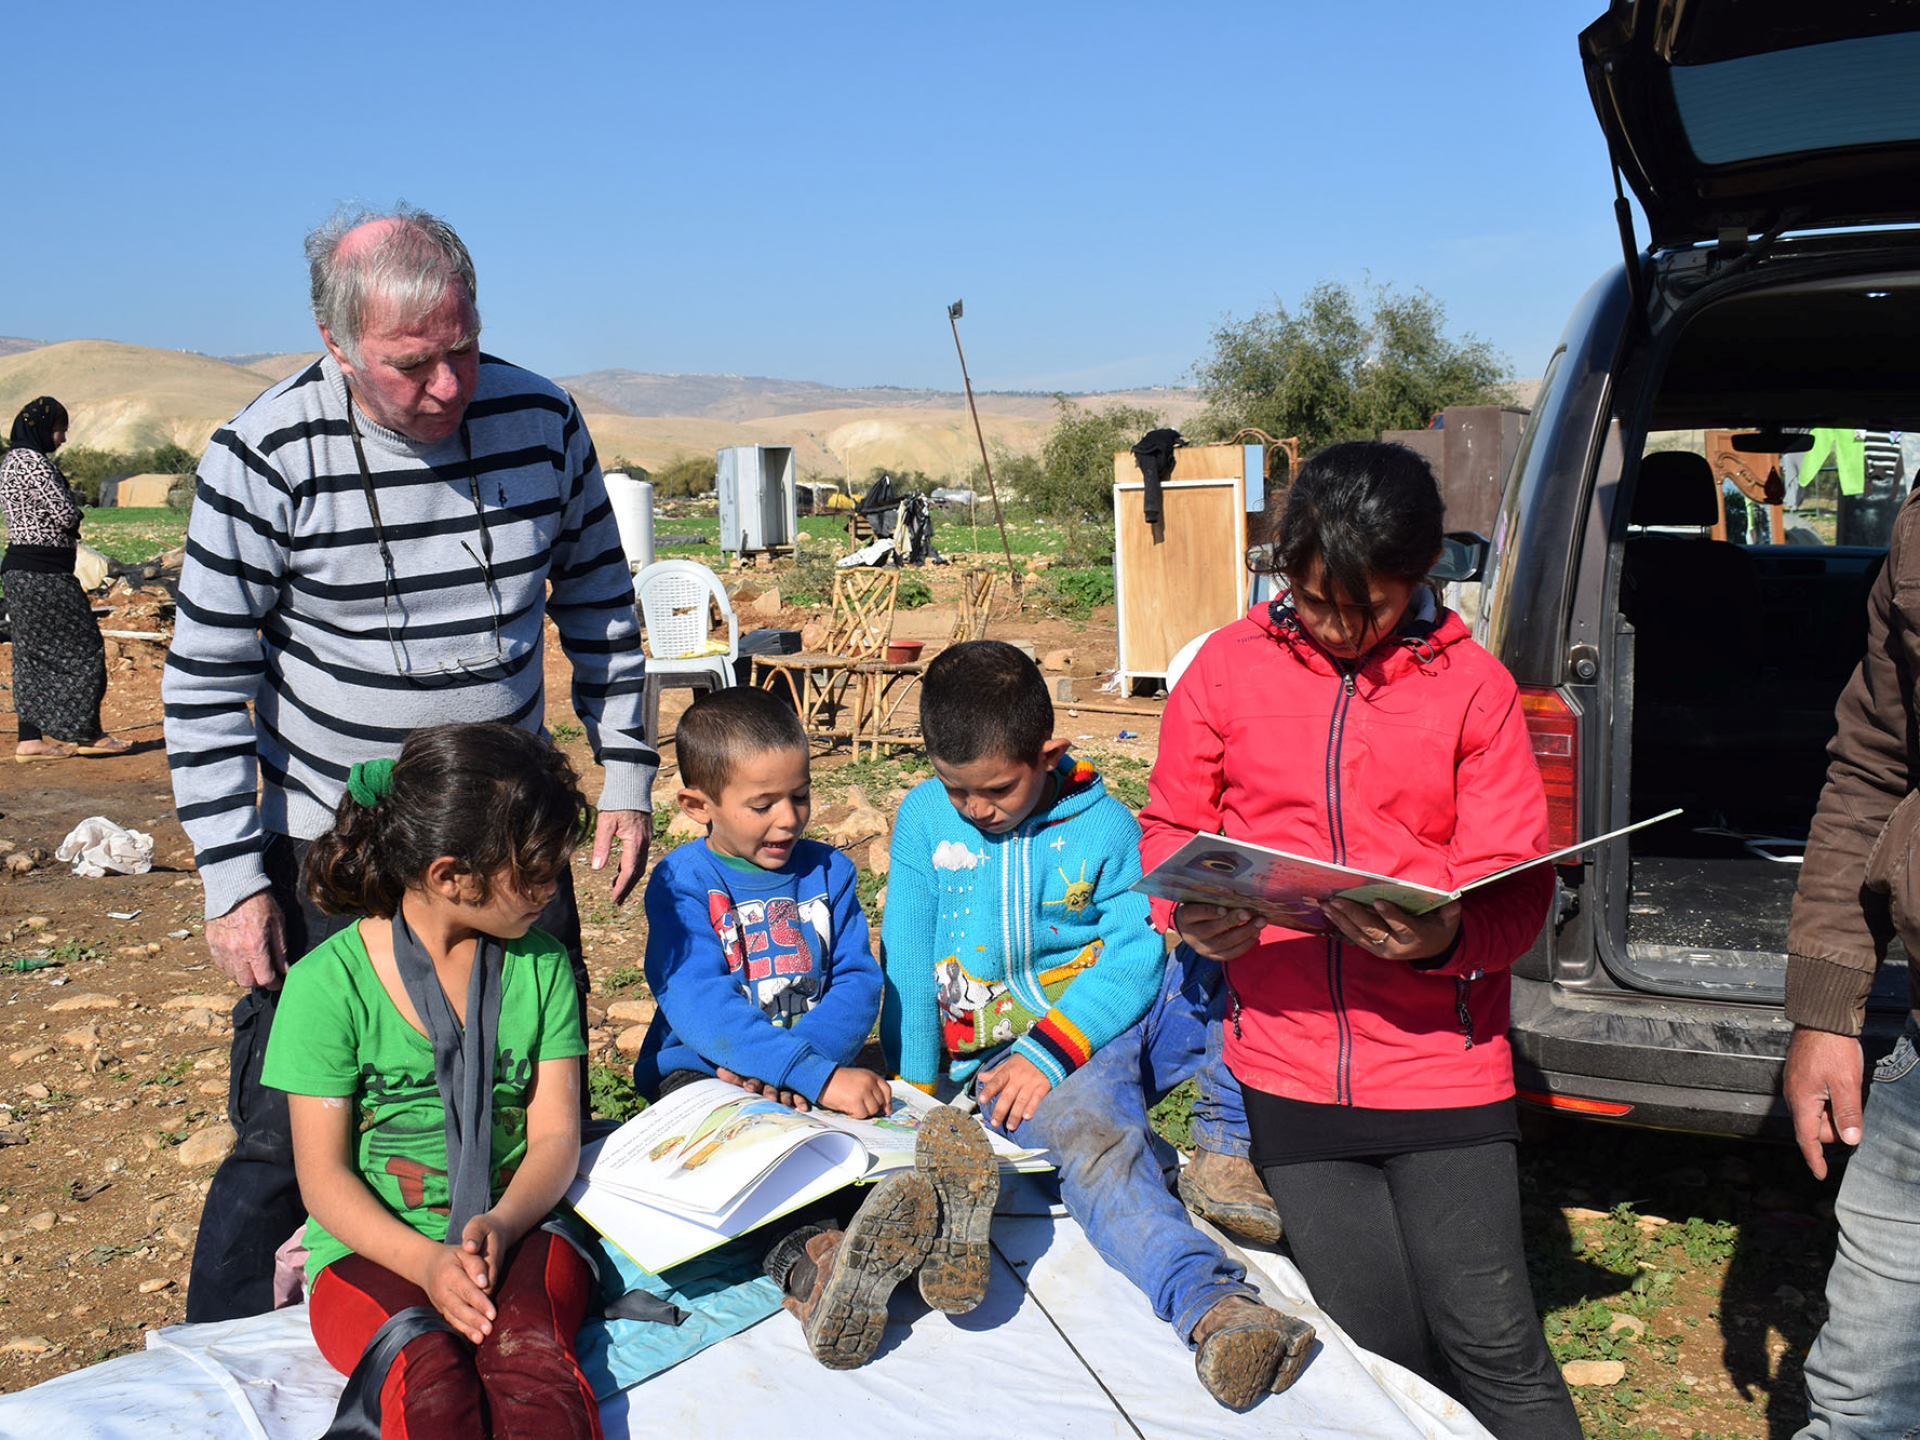 The family's children with illustrated books sitting on the still folded tent